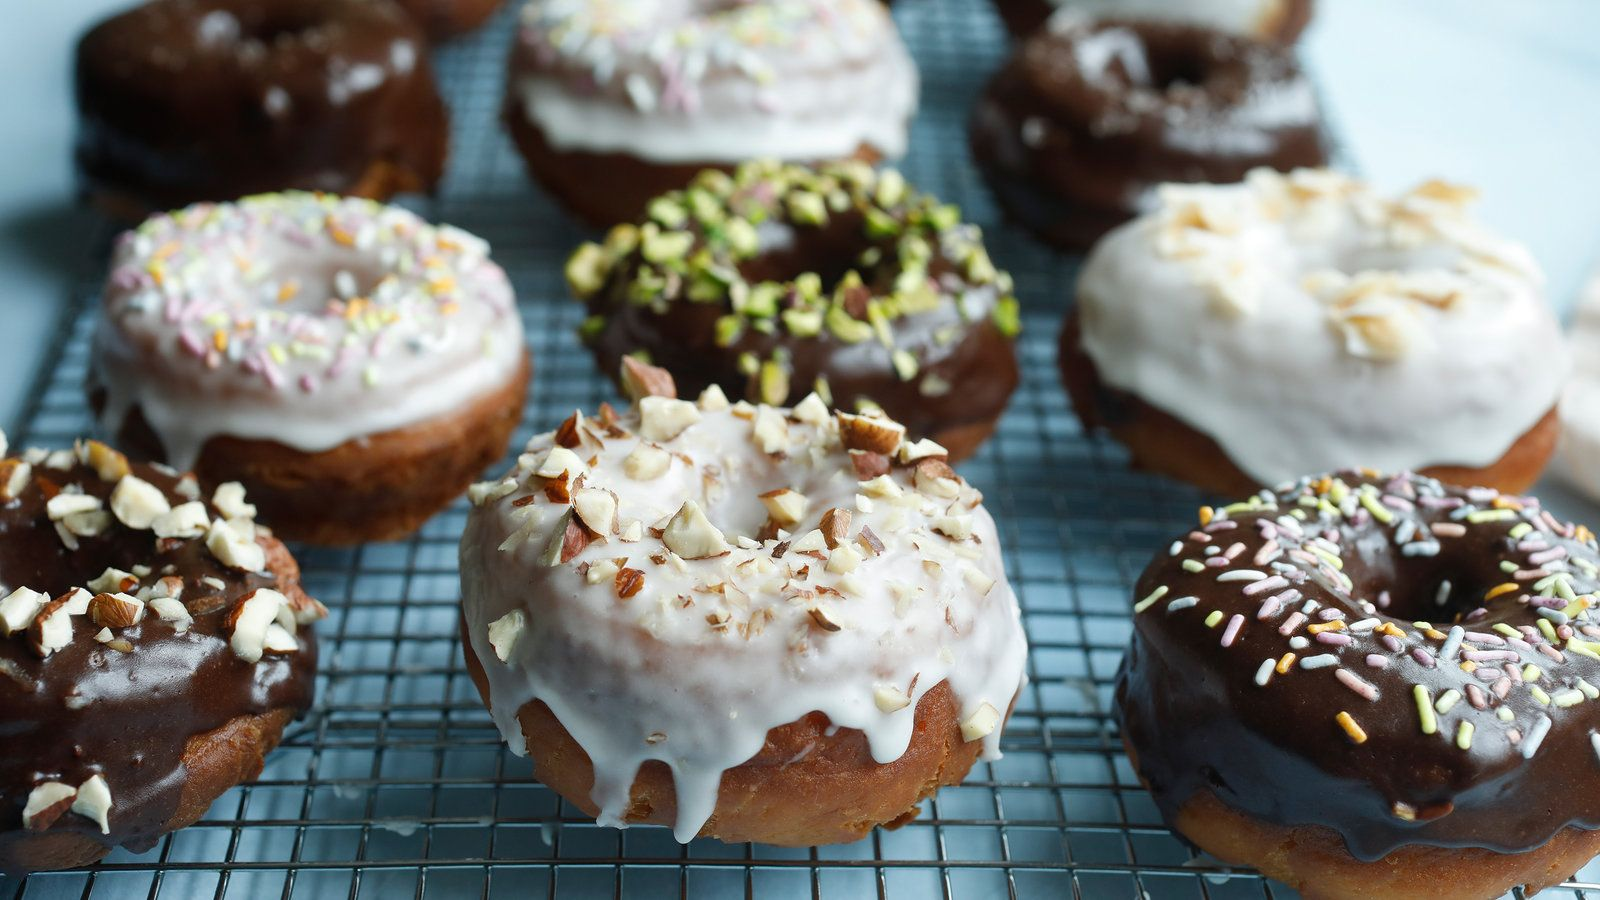 Buttermilk Cake Doughnuts Recipe Nyt Cooking Cake Doughnuts Recipe Doughnut Cake Doughnut Recipe